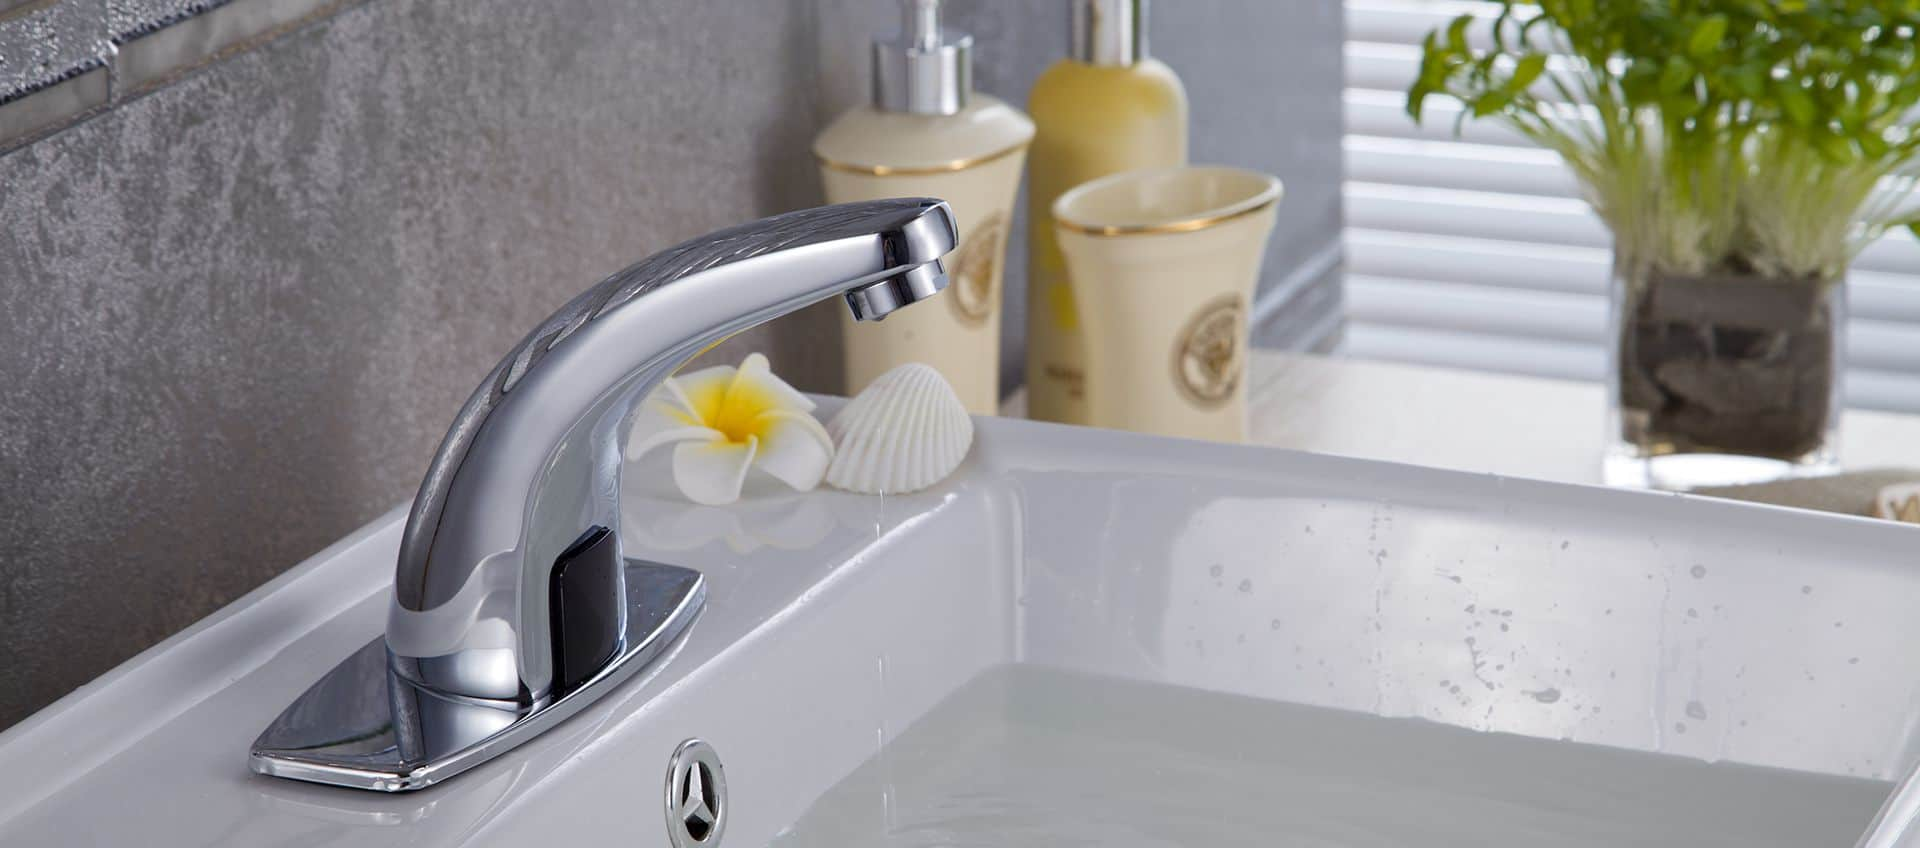 TOUCHLESS BATHROOM FAUCET COLD WATER SOLUTION